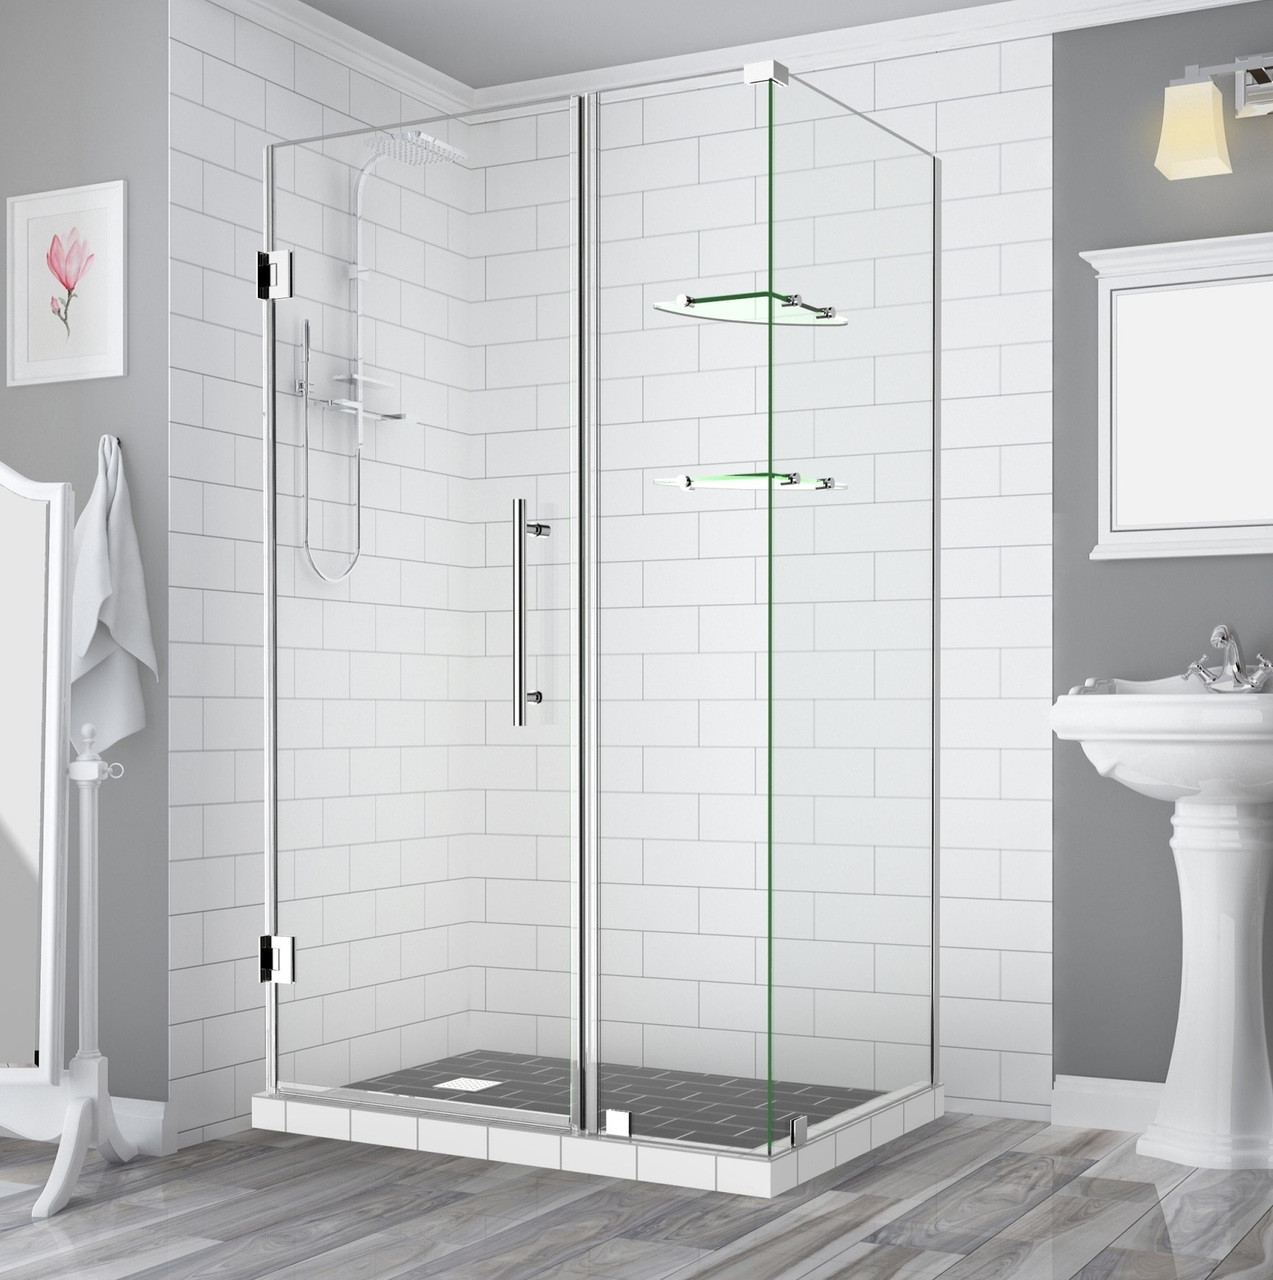 Sen962 Bromley Gs Frameless Square Rectangular Shower Enclosure With Shelves And Starcast Coating